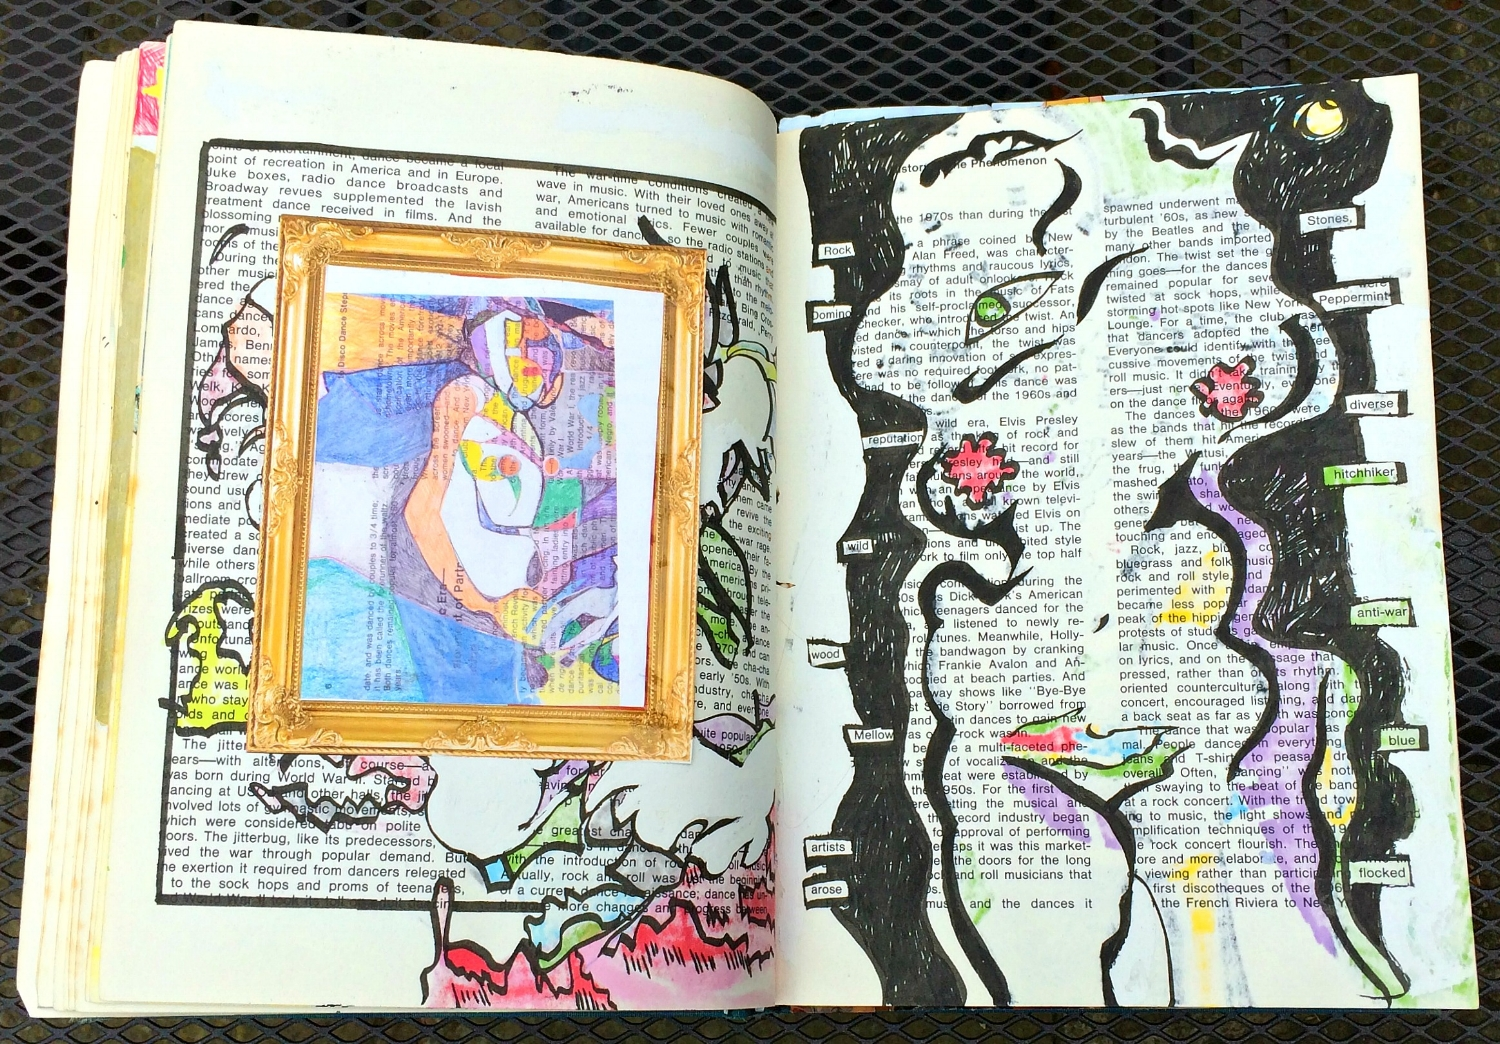 Altered Book (Disco Dance Moves): details, random abstracts